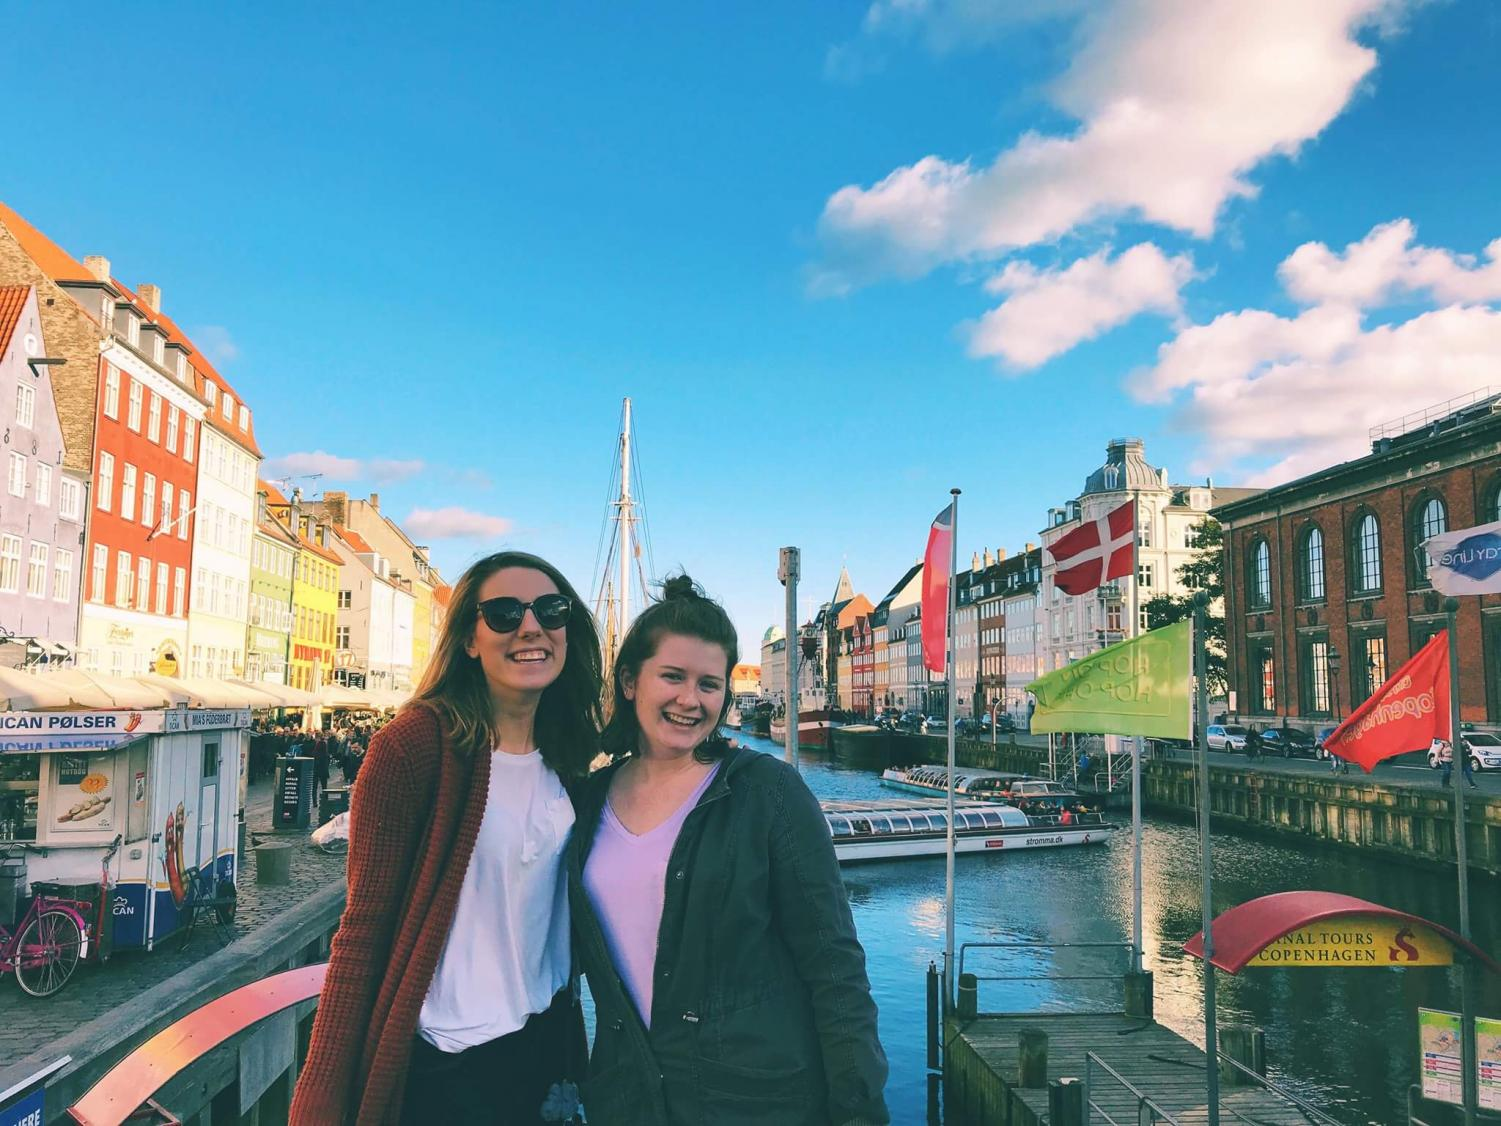 Alyson Mckie and friend exploring Europe. Photo by: Alyson Mckie